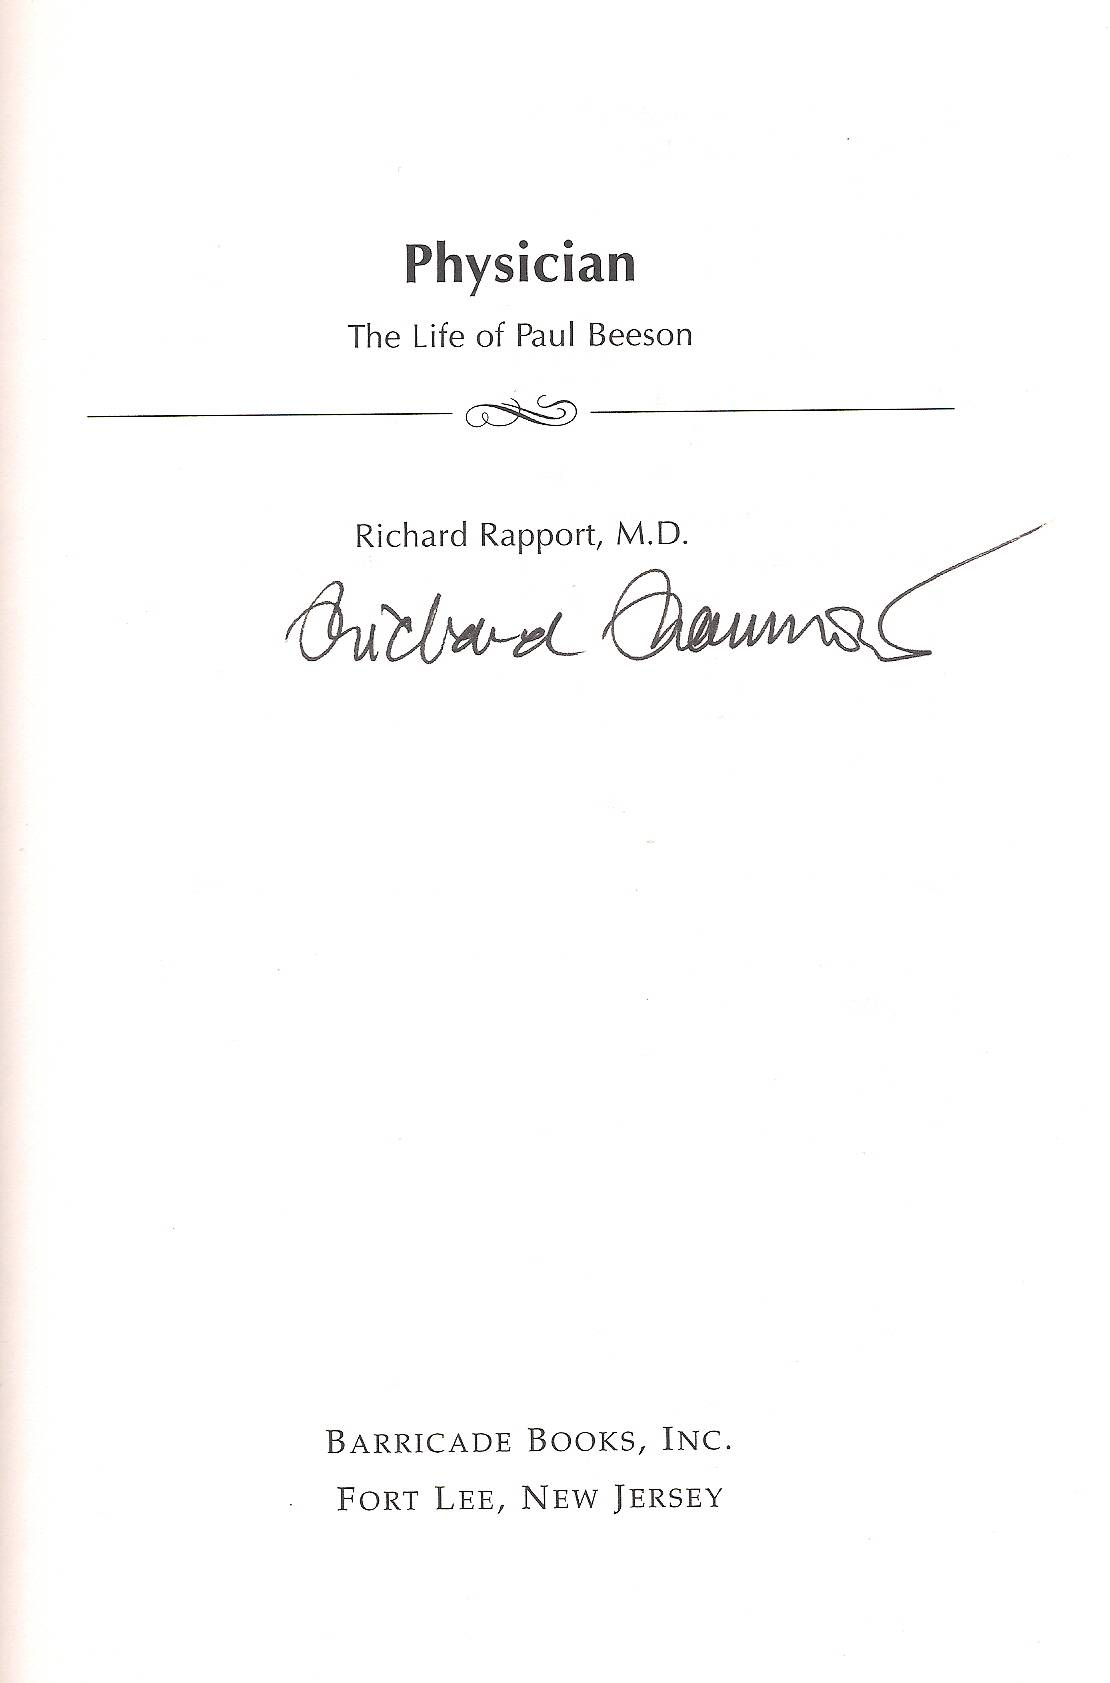 Dr. Richard Rapport